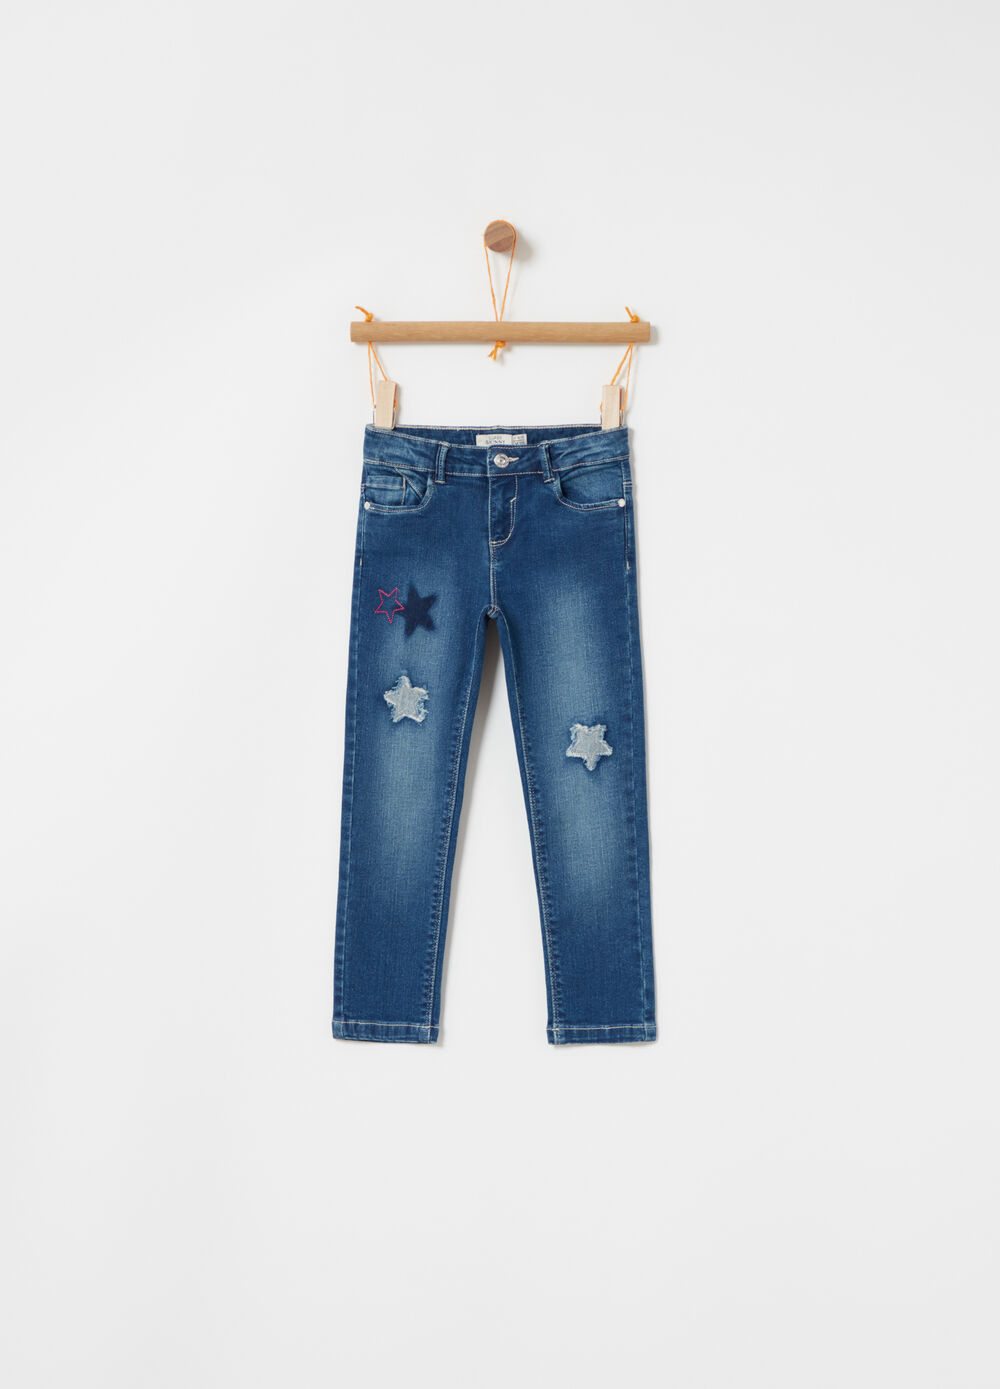 Stretch superskinny jeans with embroidery